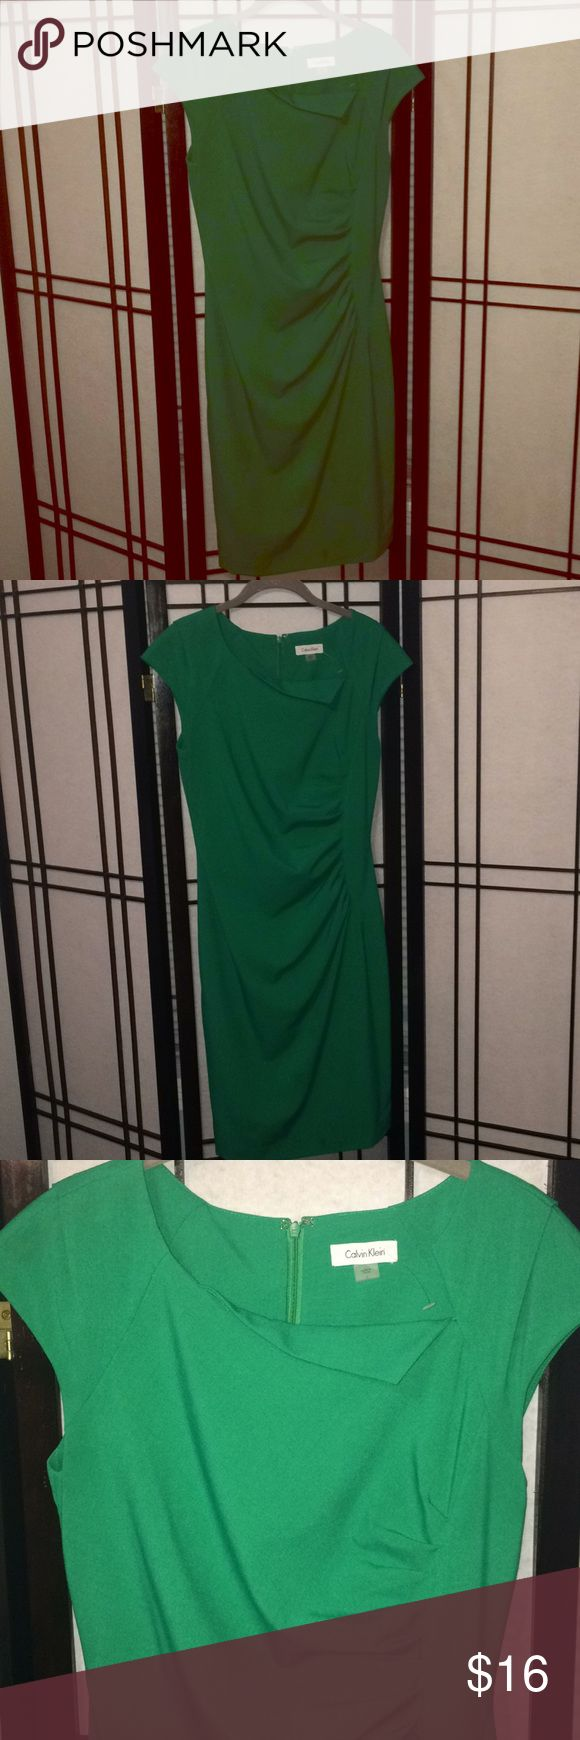 Calvin Klein Kelly Green Dress Pretty bright green work dress with cap sleeves and flattering ruching detail  on front. Hits just above the knee, fully lined. Calvin Klein Dresses